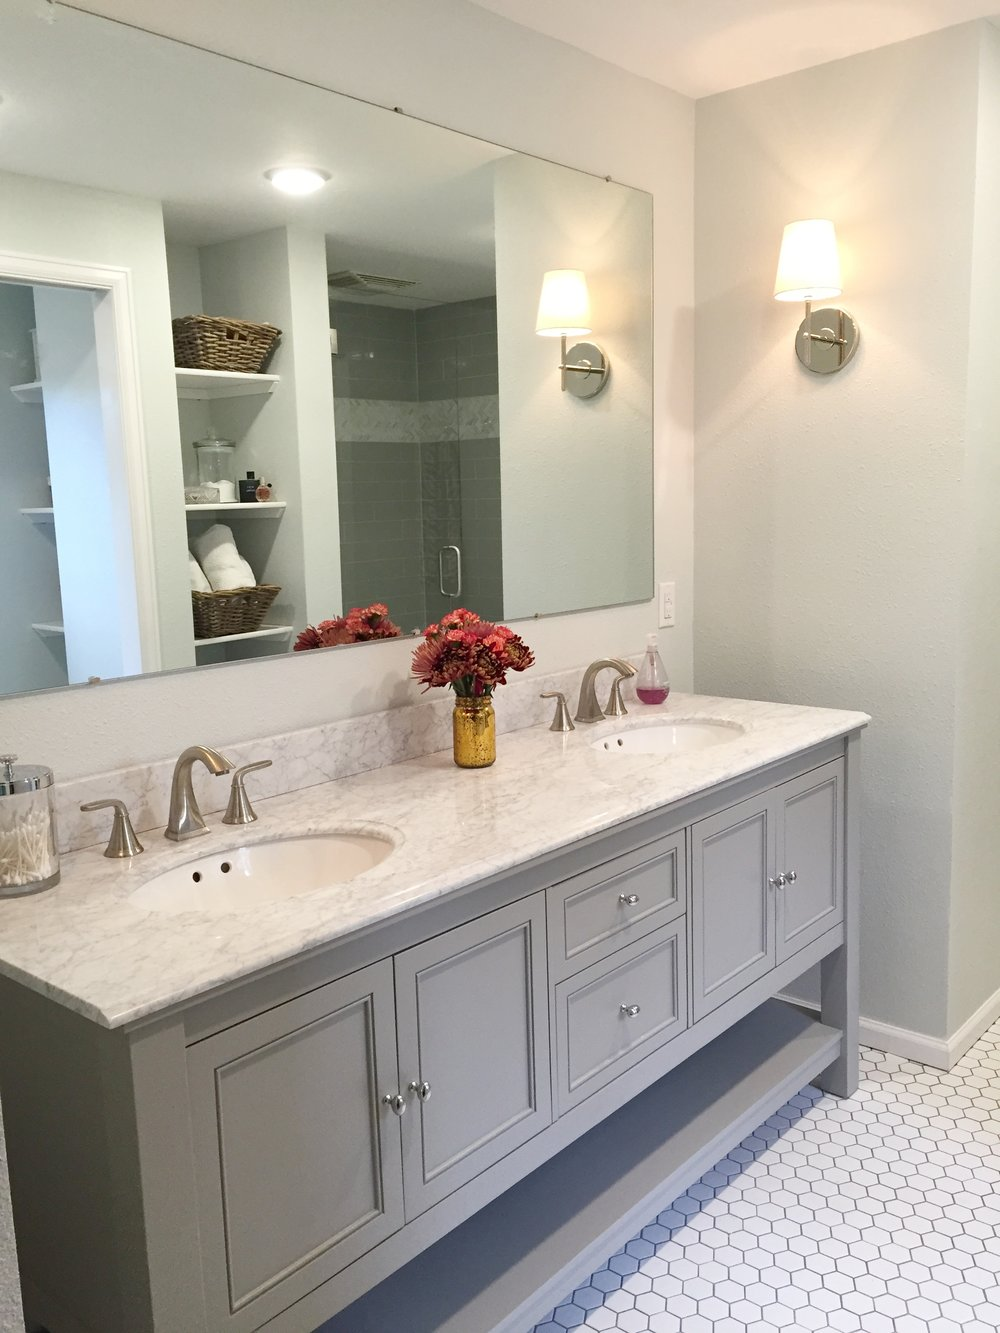 Sconces are from West Elm & vanity is from Home Depot.